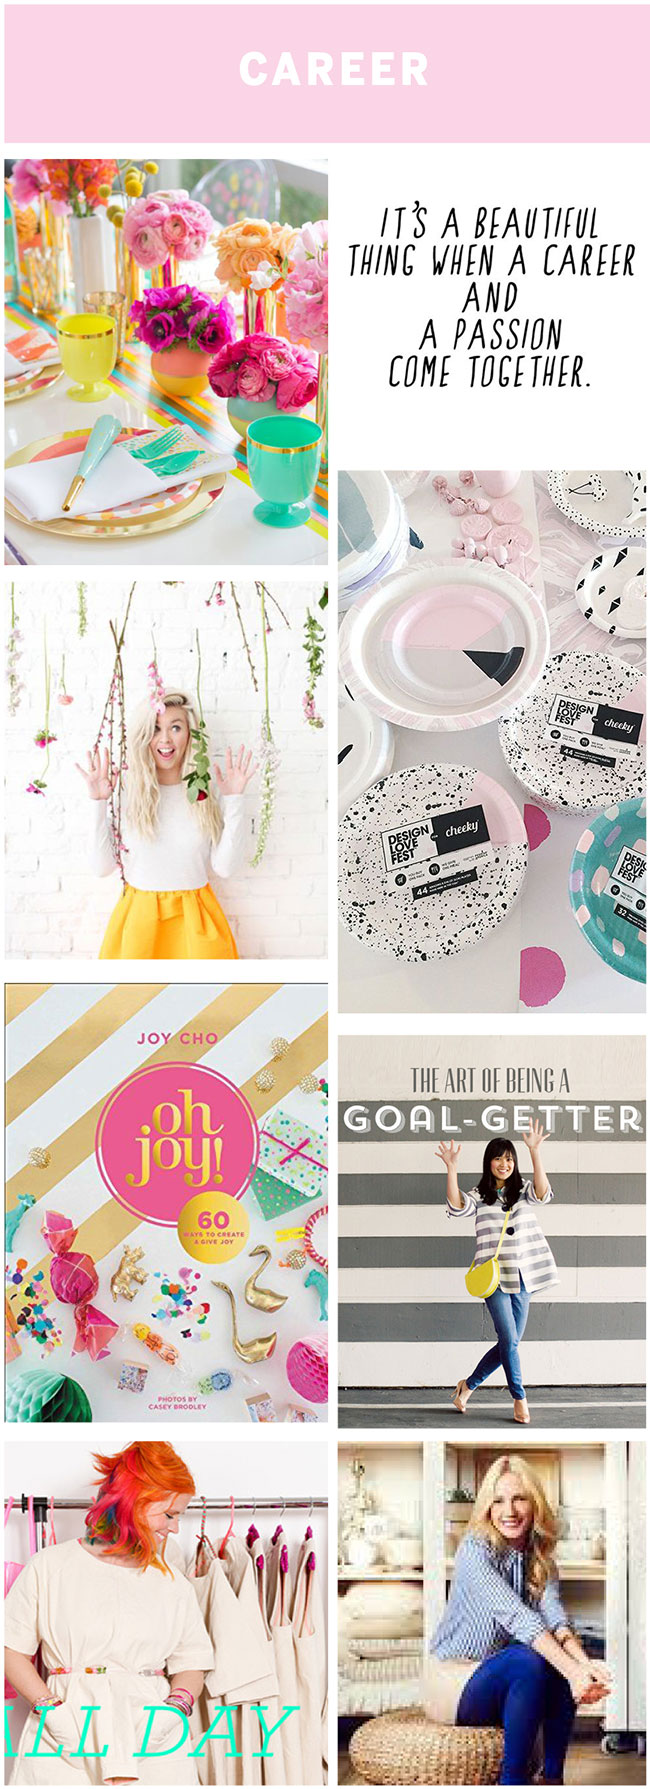 Creating a vision board -career : by The Sweet Escape